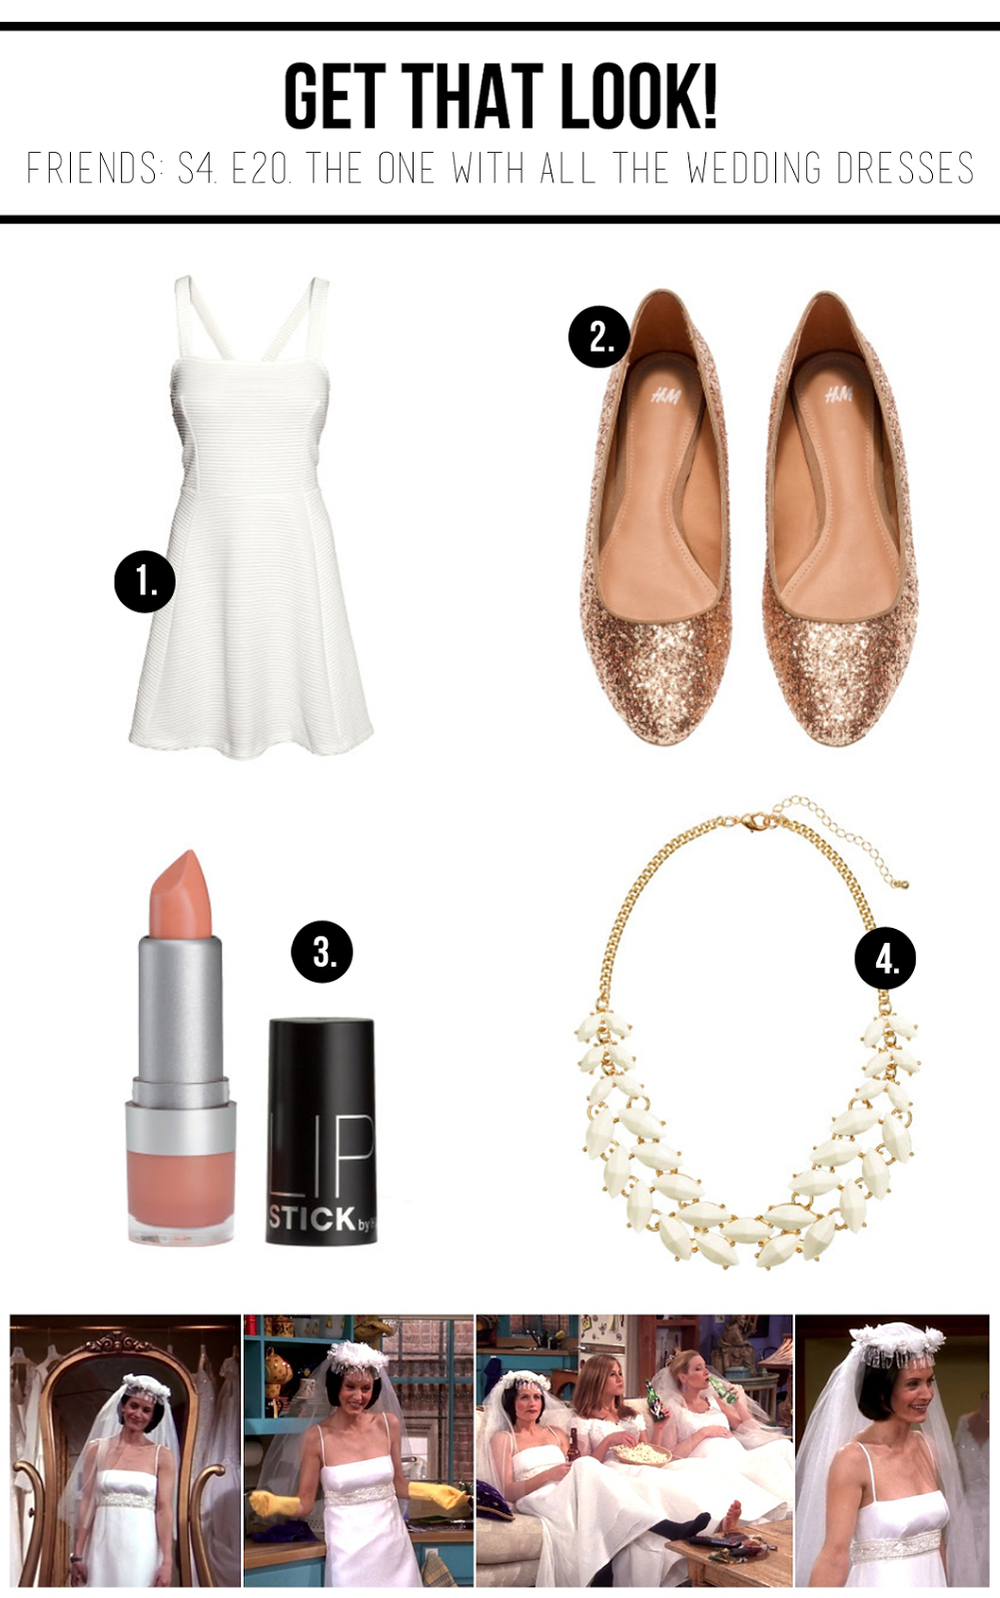 friends-wedding-dresses-inspiration-monica-fashion.png